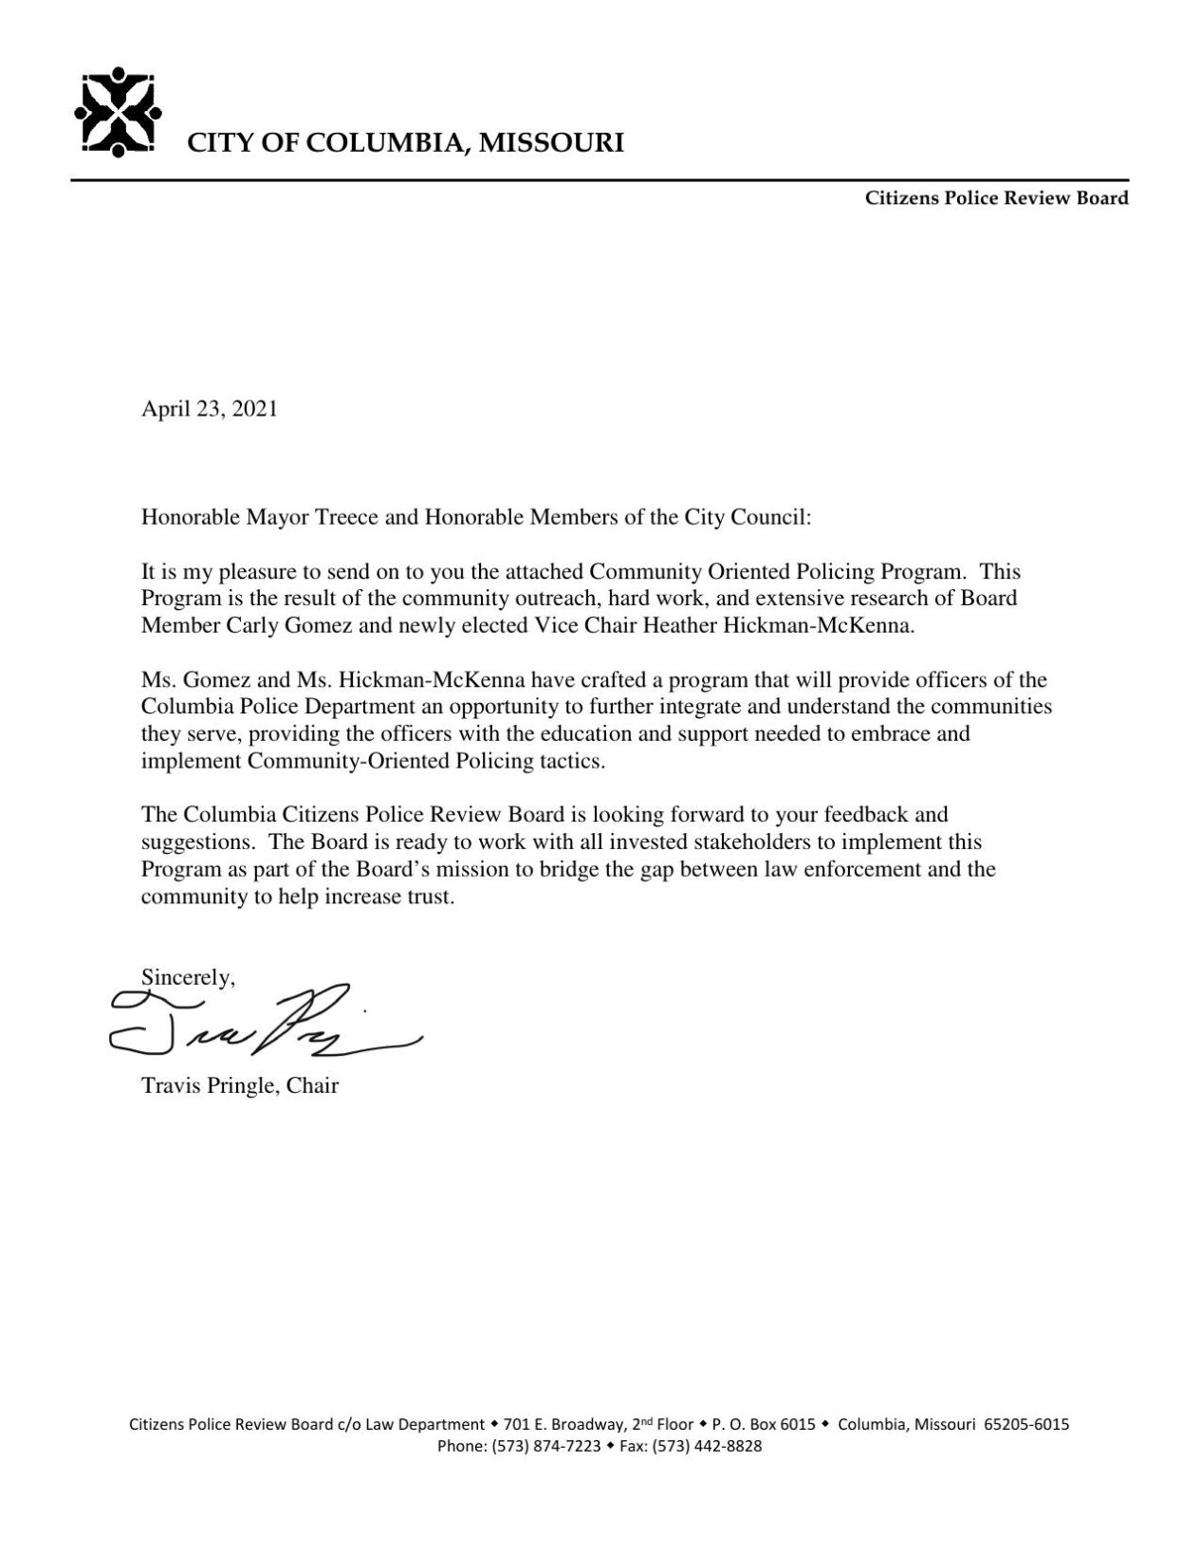 Letter to City Council from Columbia Citizens Police Review Board